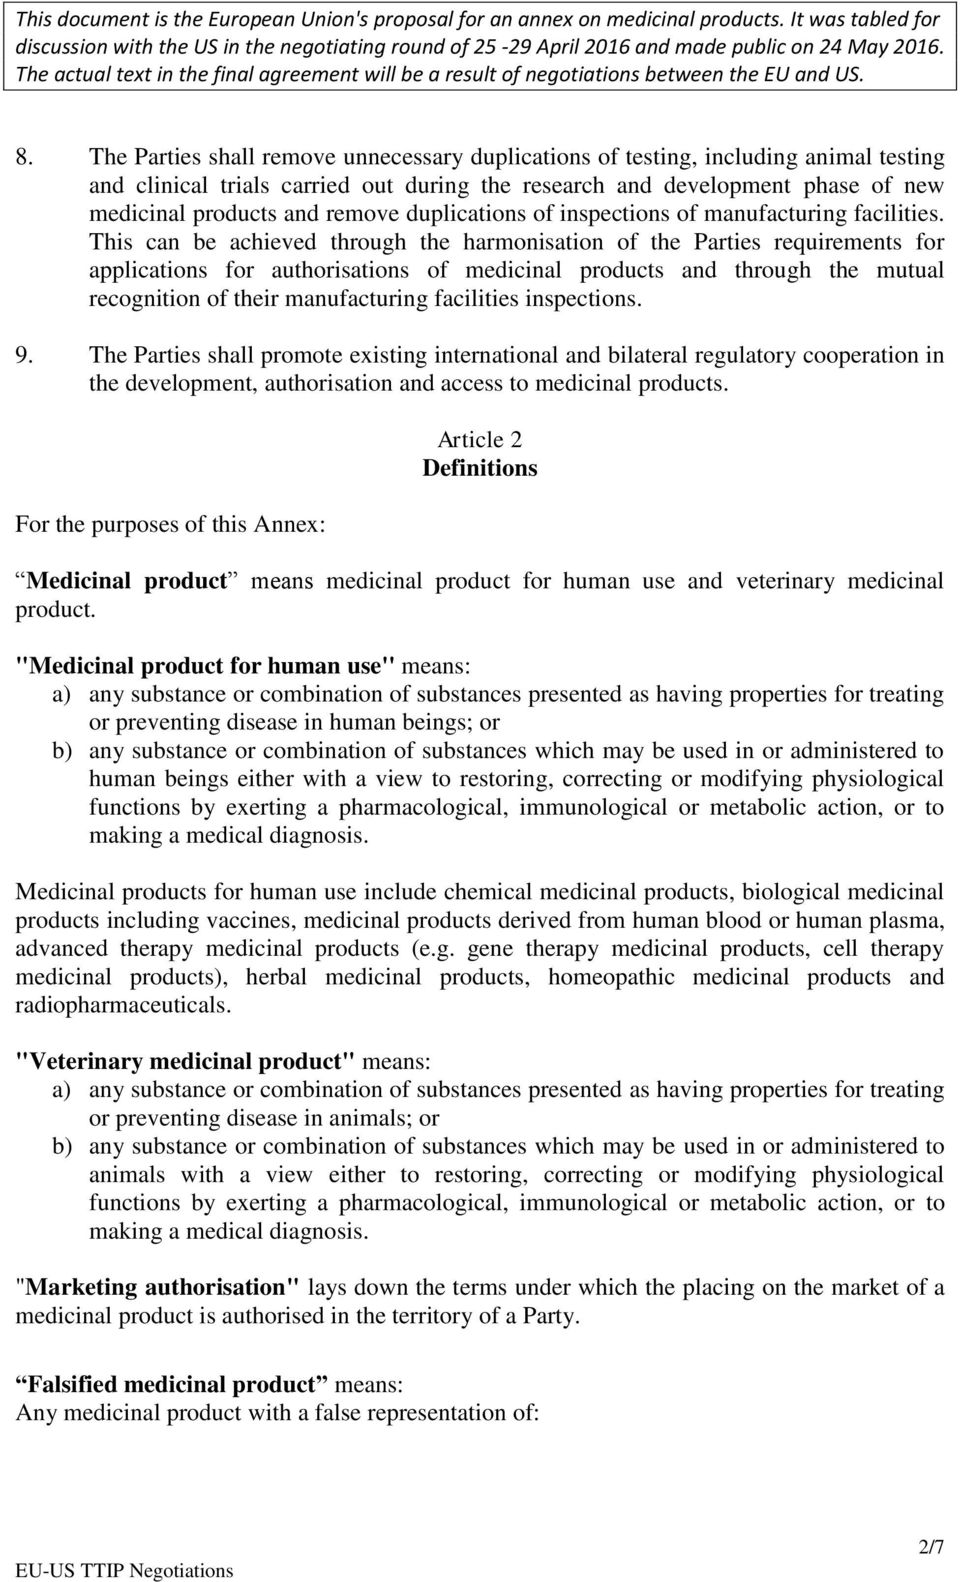 This can be achieved through the harmonisation of the Parties requirements for applications for authorisations of medicinal products and through the mutual recognition of their manufacturing